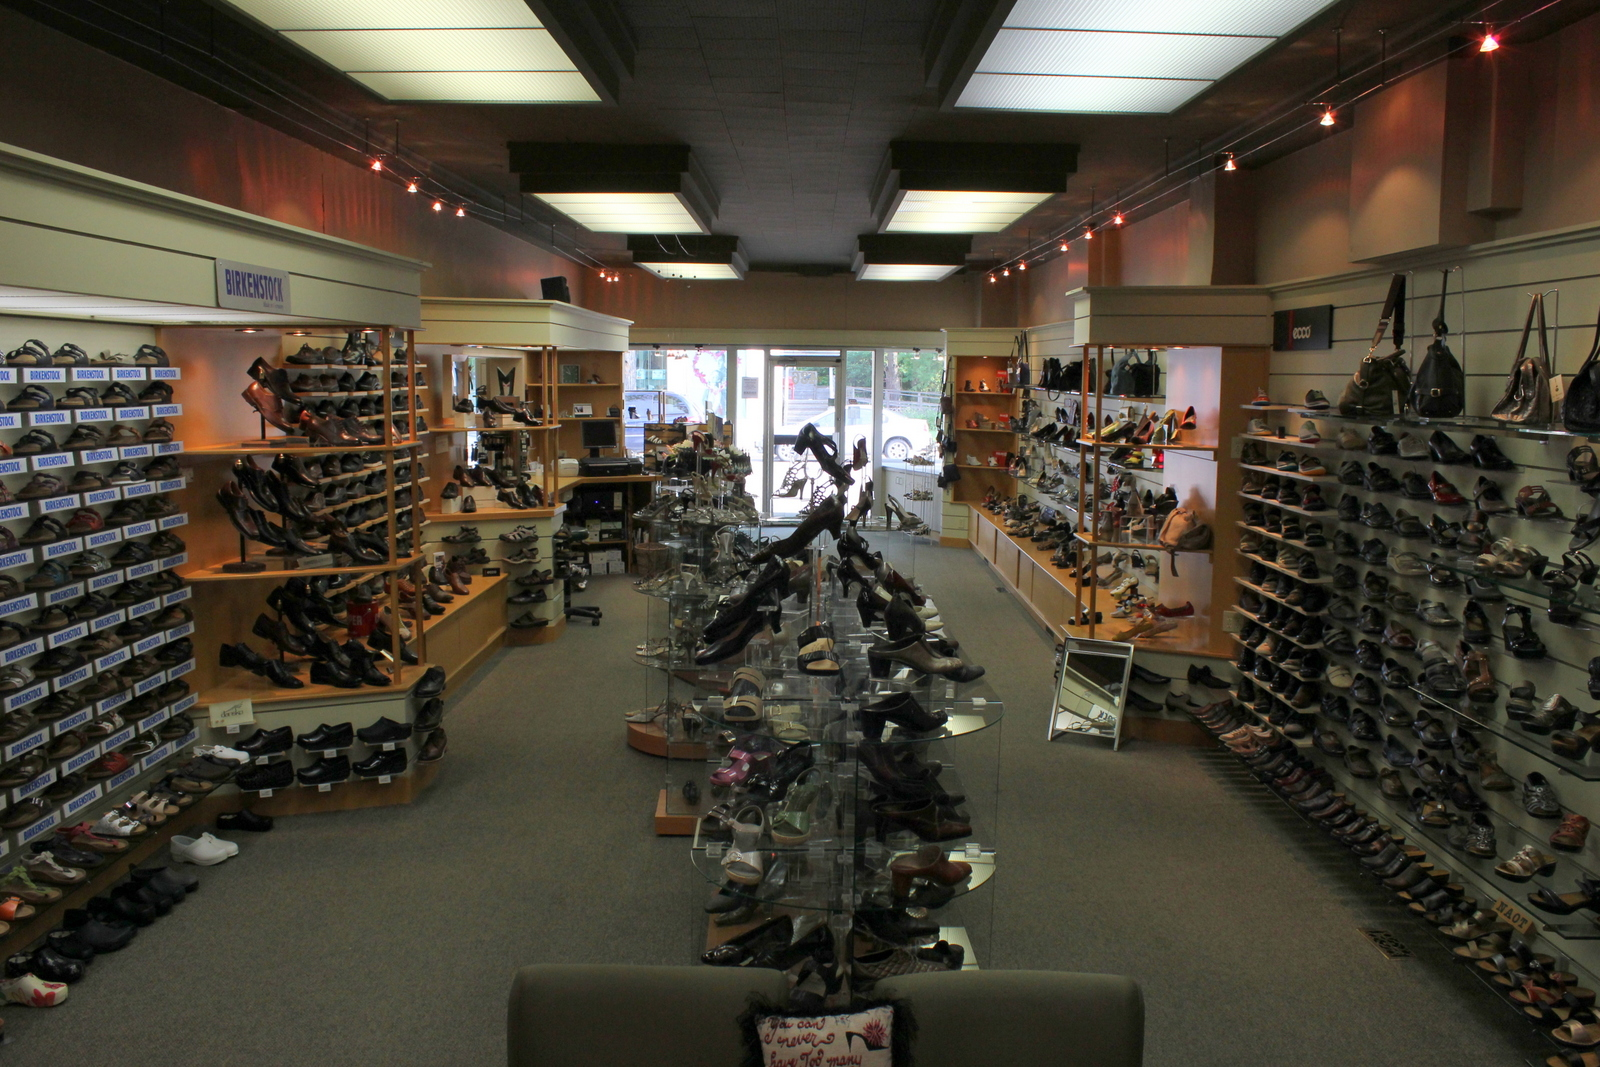 European Shoe Shop (Academy)